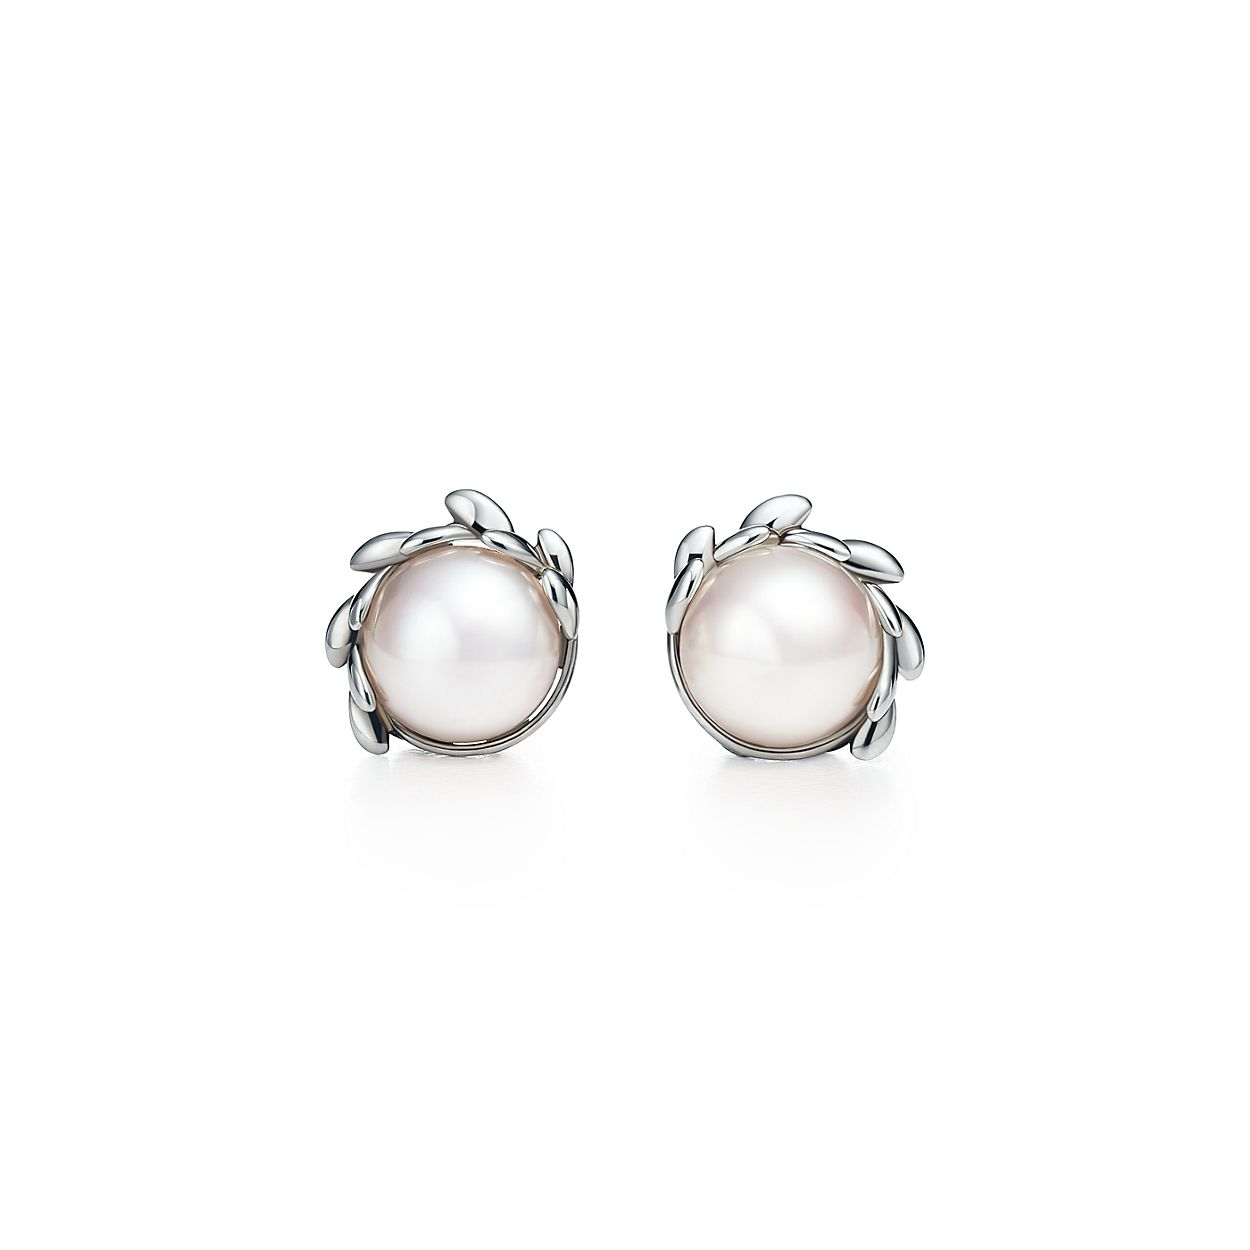 pearls peral earrings shepherd pearl crook drop douglas joyful coleman products white